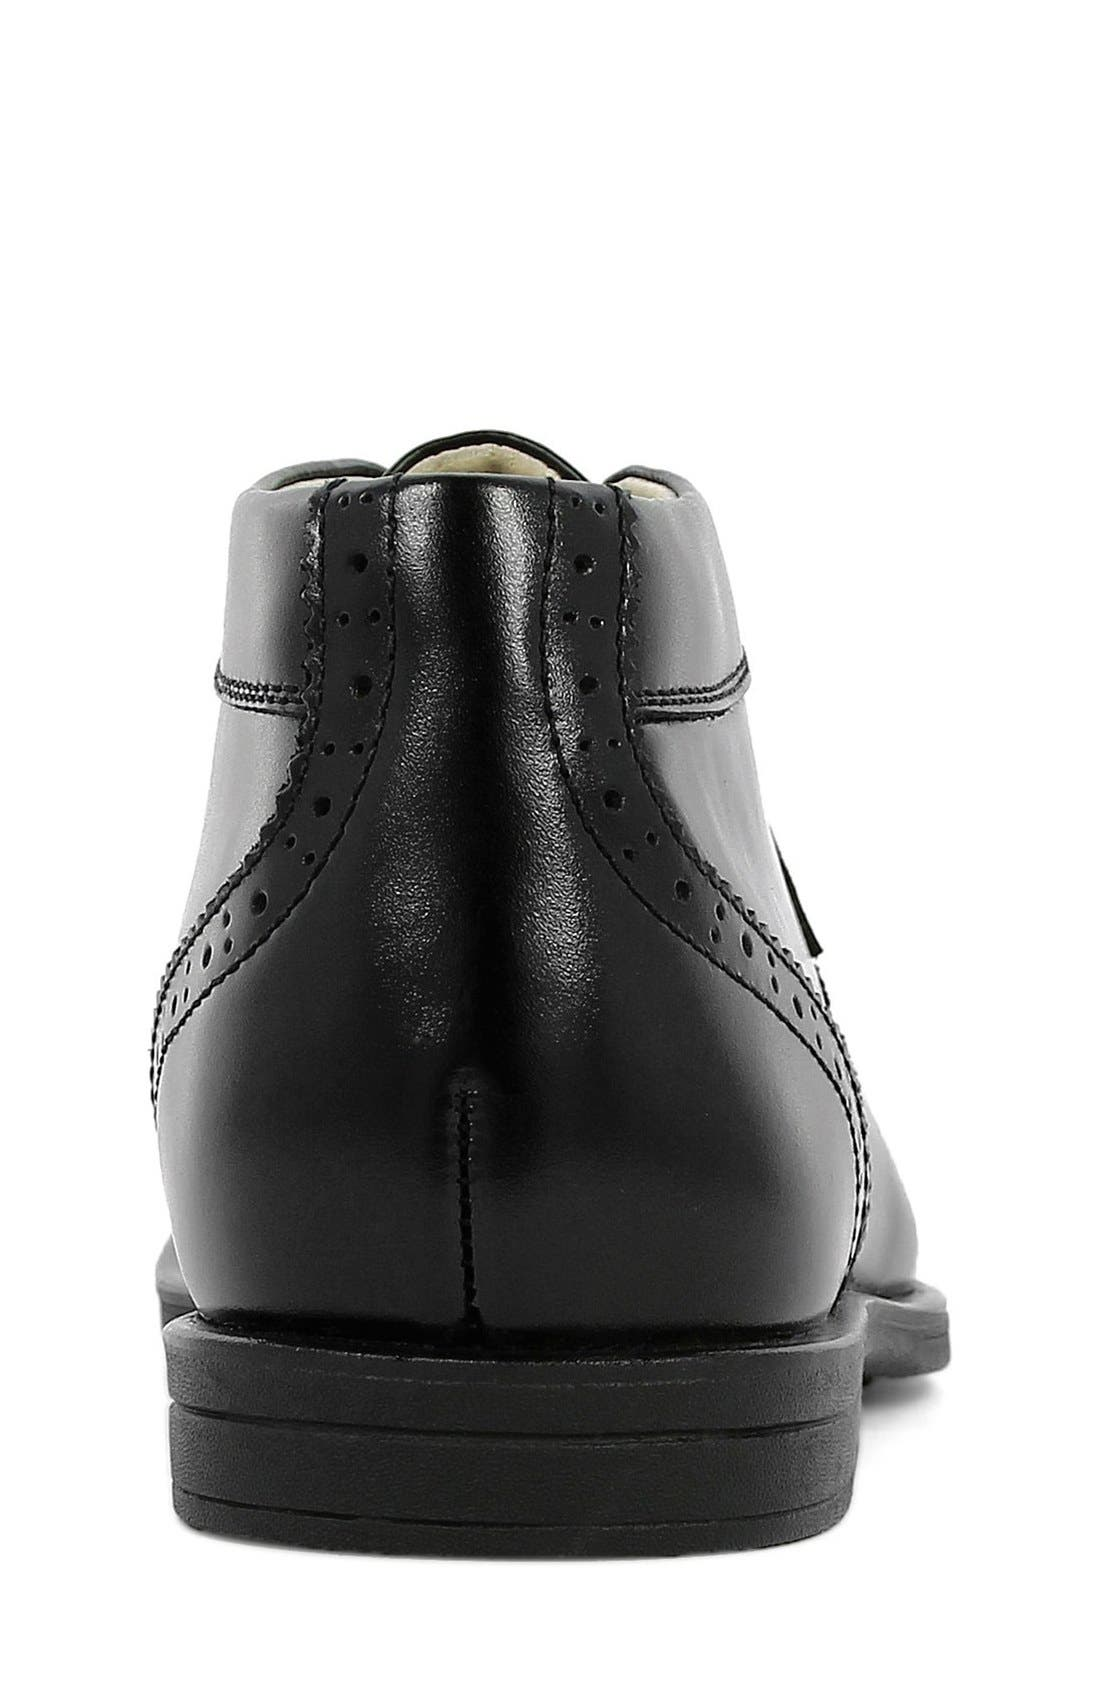 'Reveal' Chukka Boot,                             Alternate thumbnail 7, color,                             BLACK LEATHER